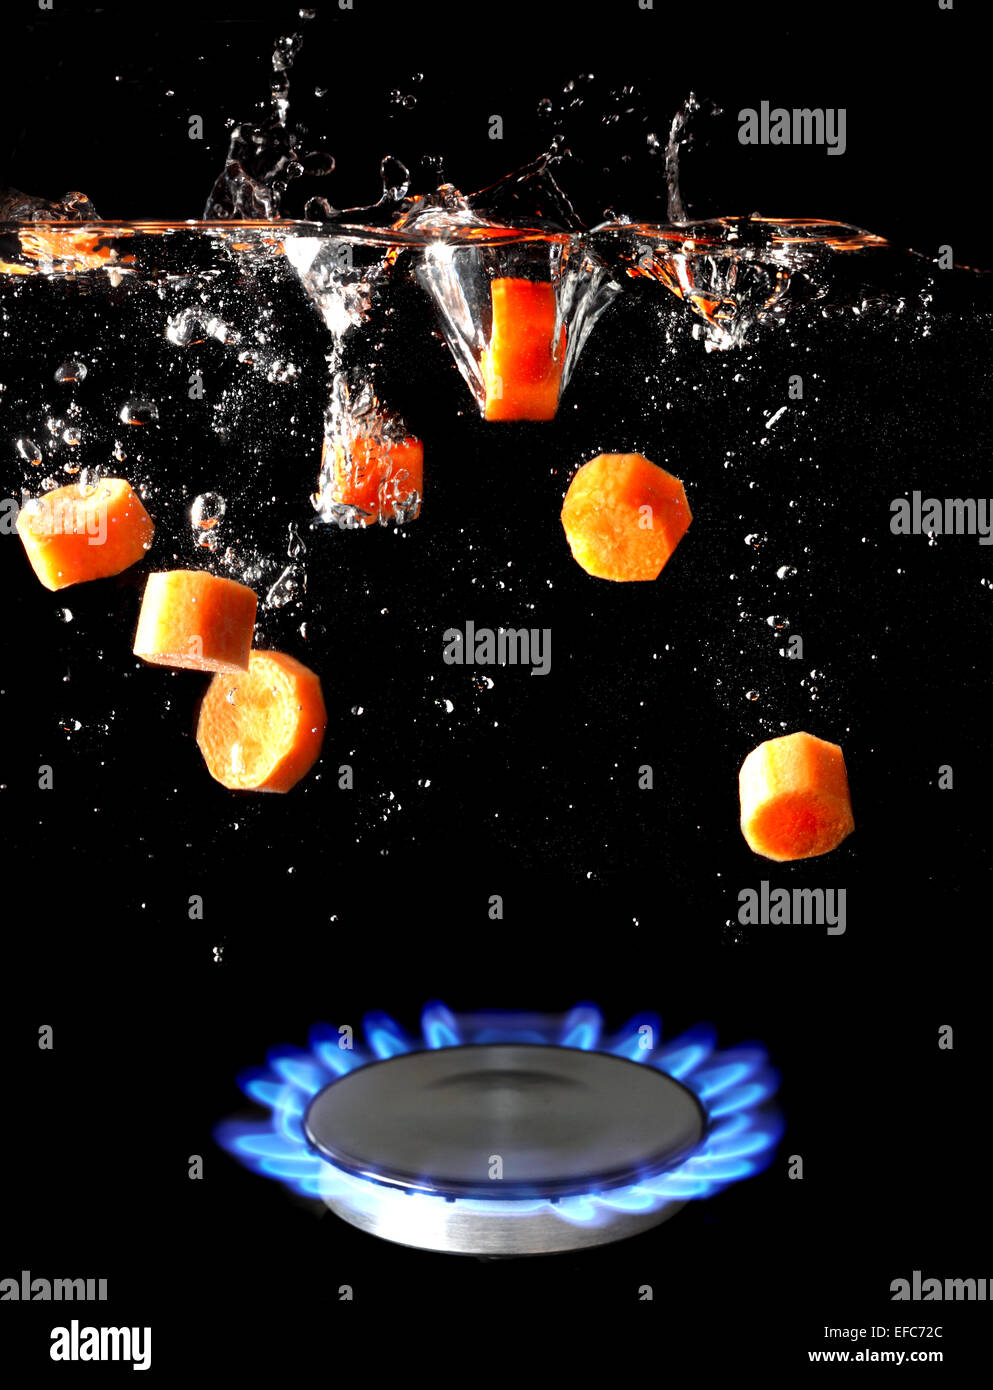 A conceptual image of a gas hob with sliced carrots being dropped into boiling water - Stock Image